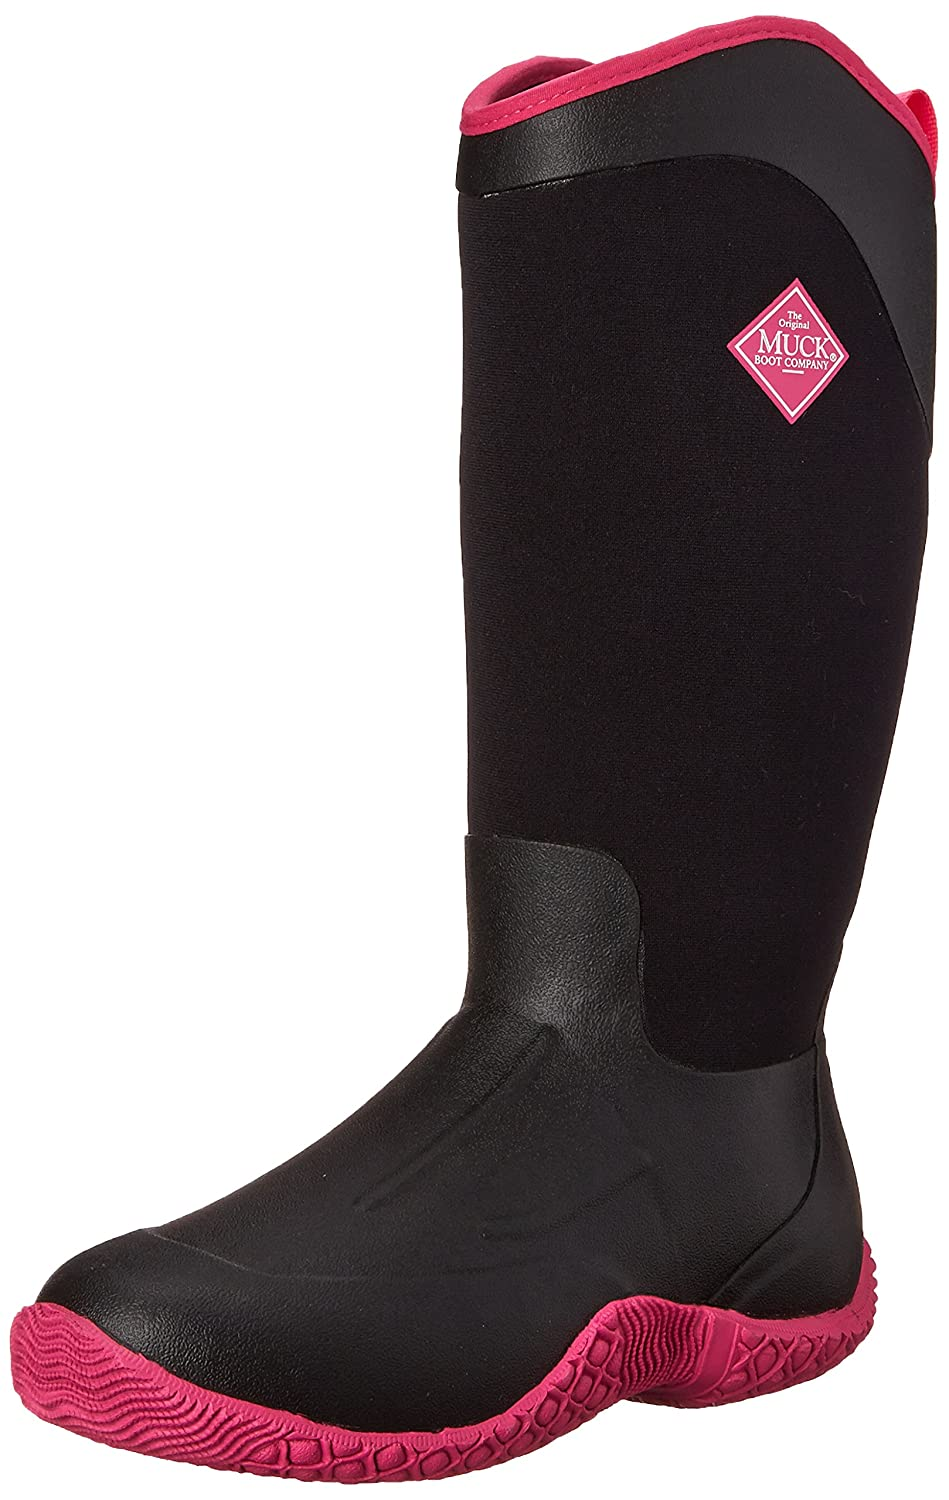 MuckBoots Women's Tack II Mid Equestrian Work Boot B00NV62NXW 9 B(M) US|Black/Hot Pink